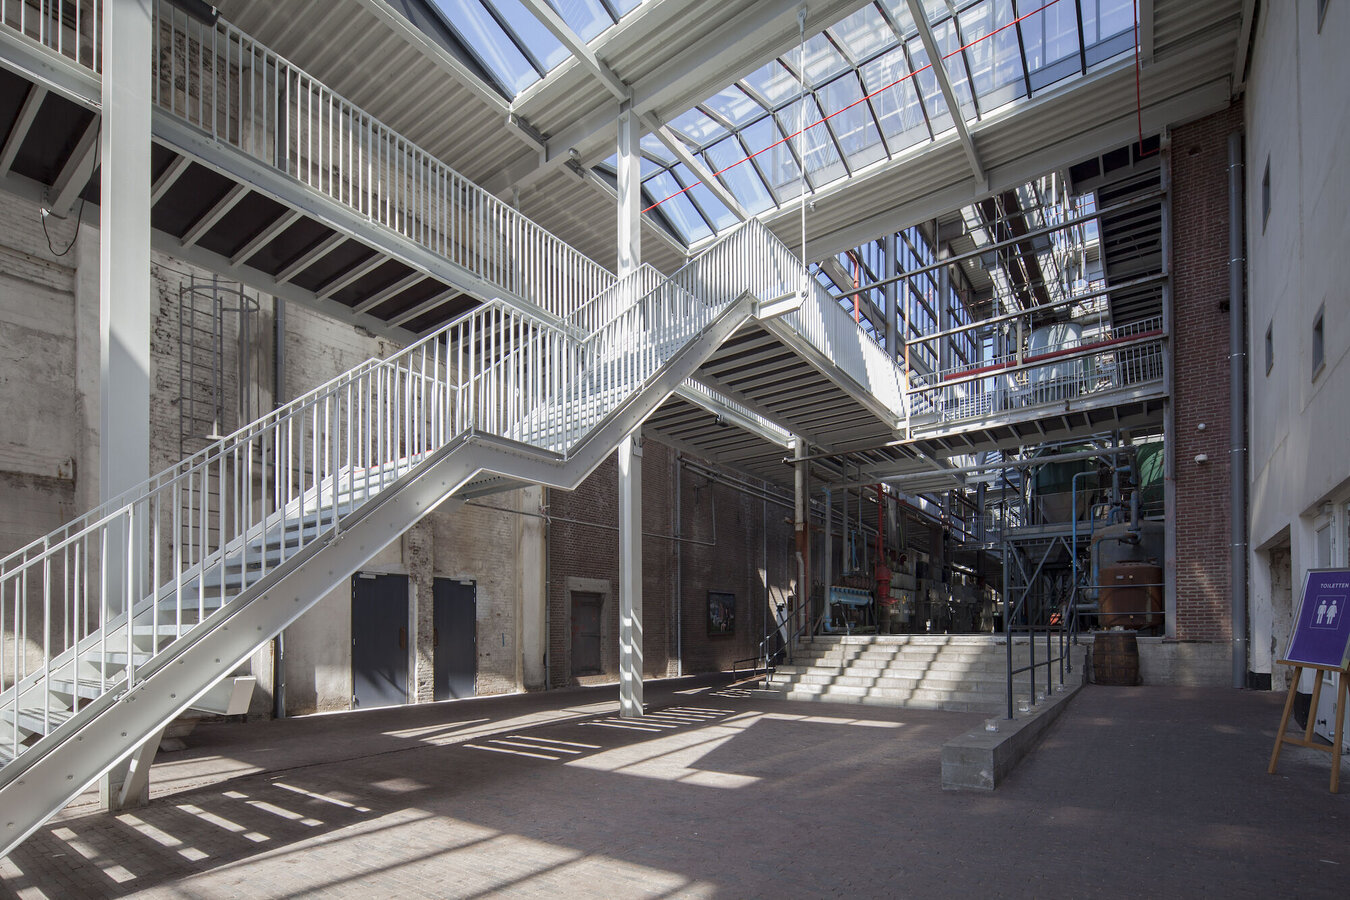 CR 120 Conservatories - Office building CHV Noordkade located in Vaux-sur-Sûre, the Netherlands